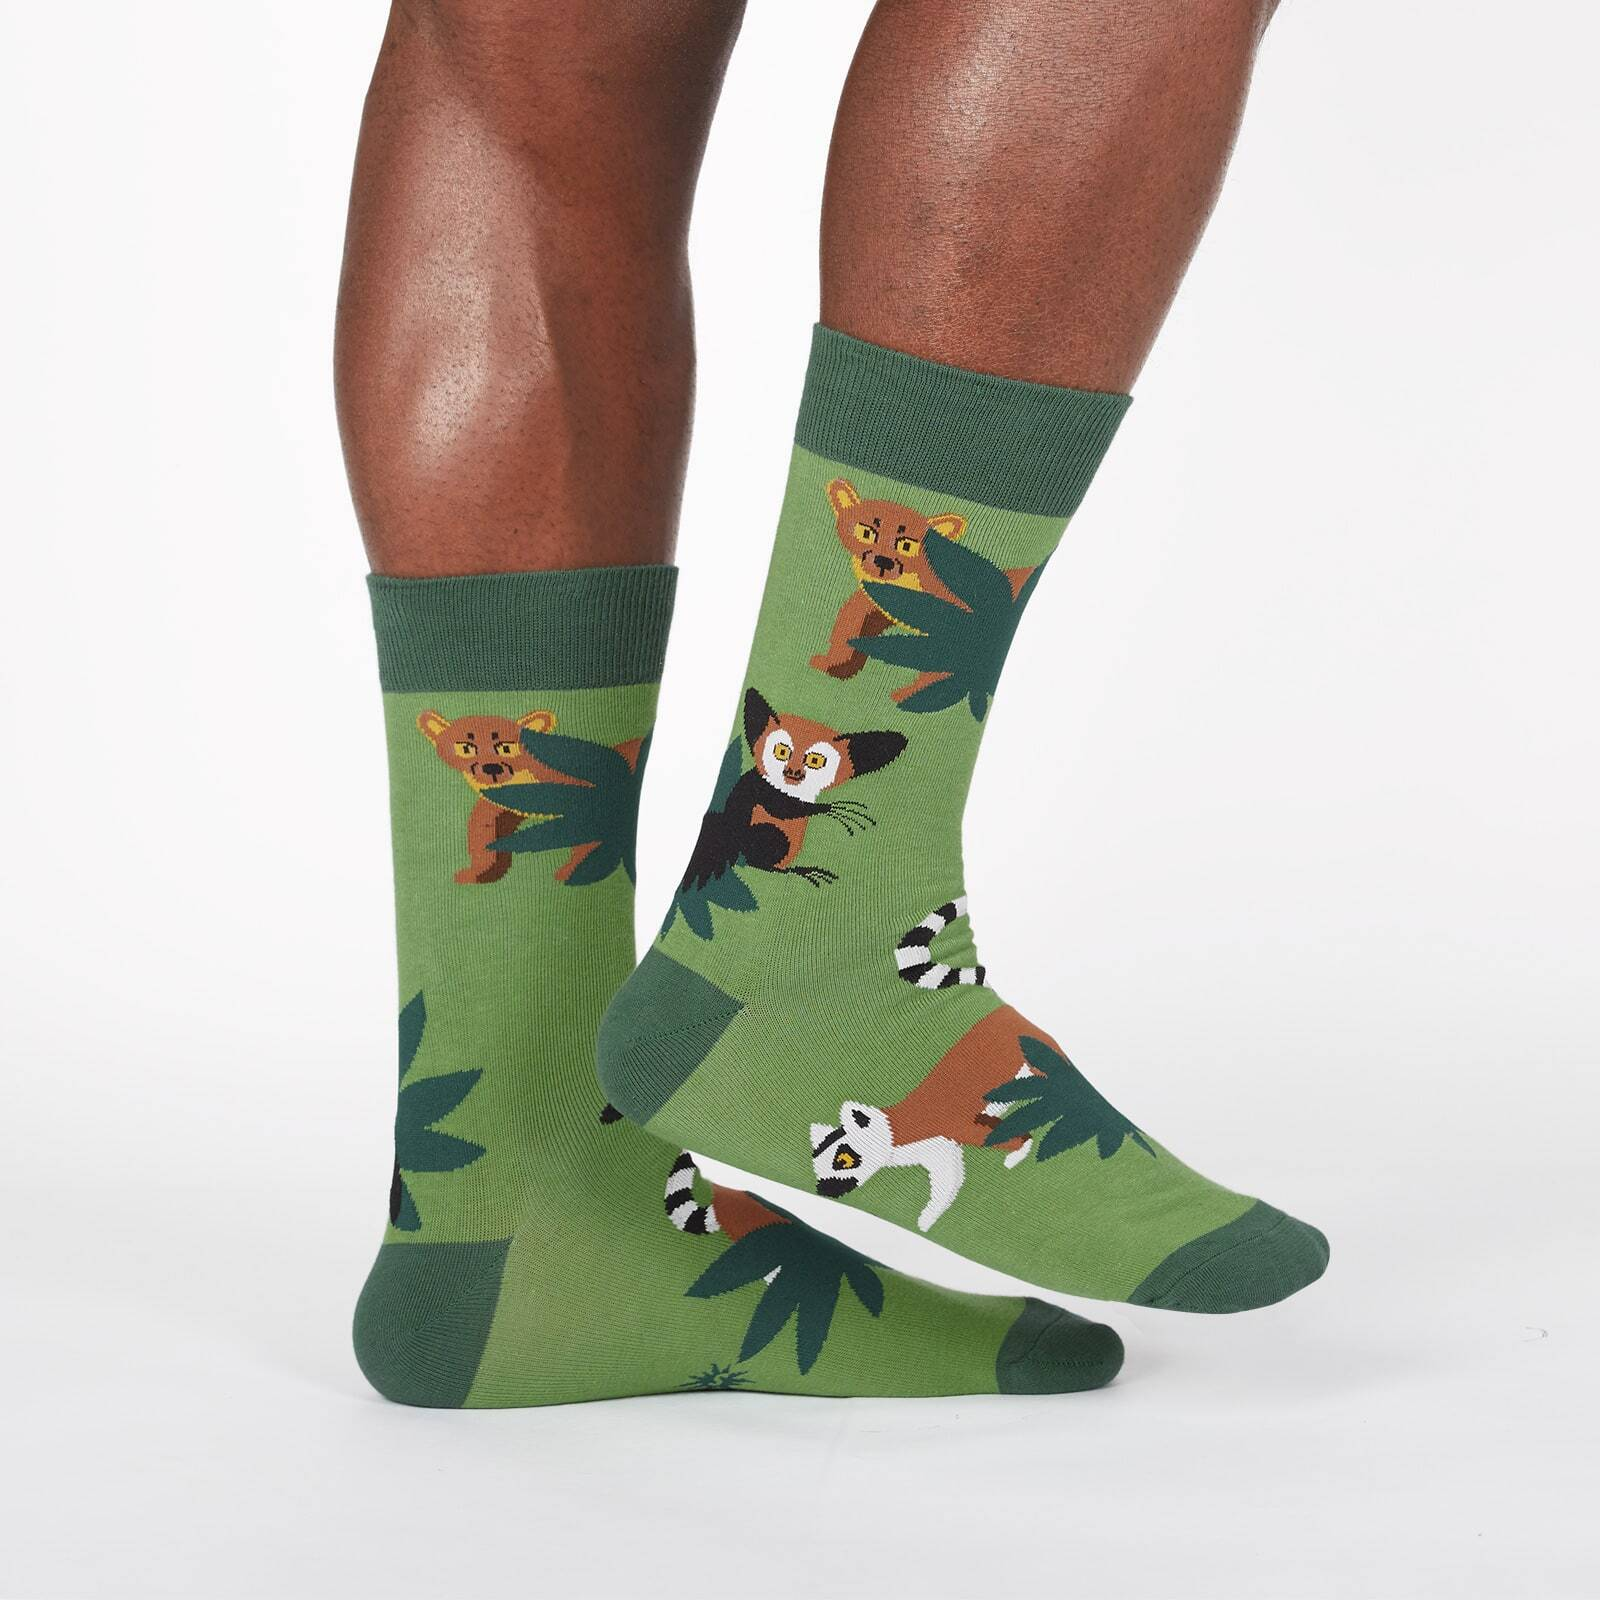 model wearing Madagascar Menagerie- Animals of Madagascar Africa Crew Socks Green - Men's